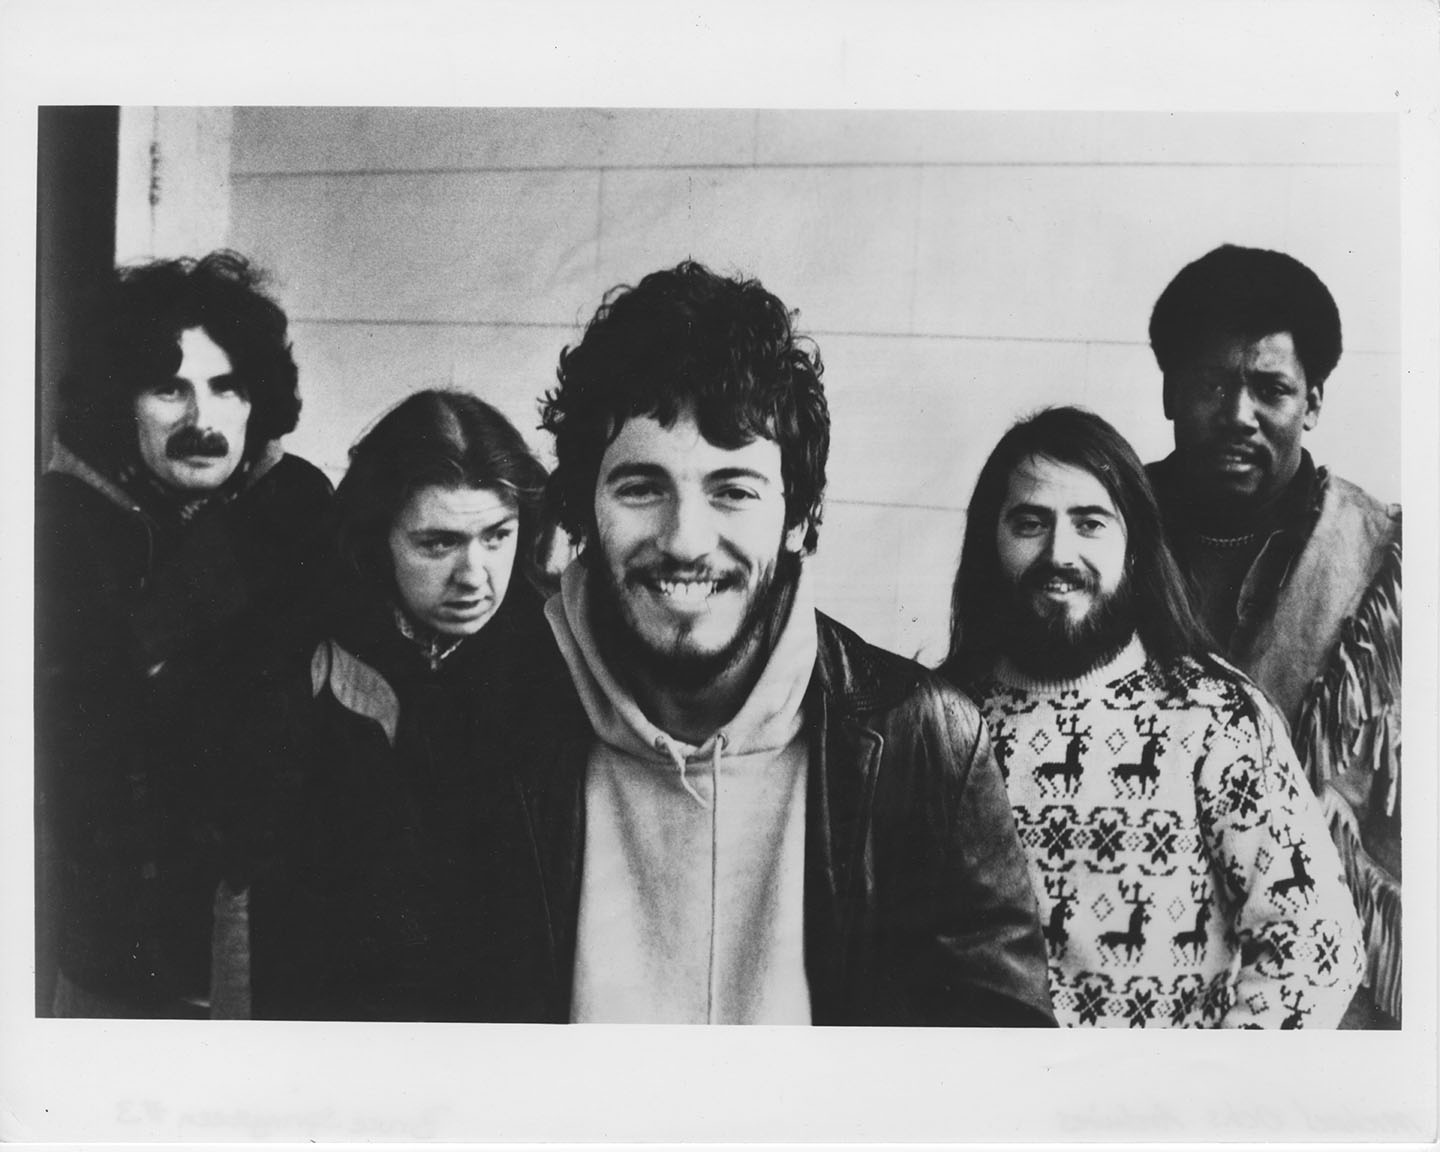 Bruce and E-street Band 1974 - Vini Lopez, Danny Federici, Bruce, Garry Tallent, Clarence Clemons